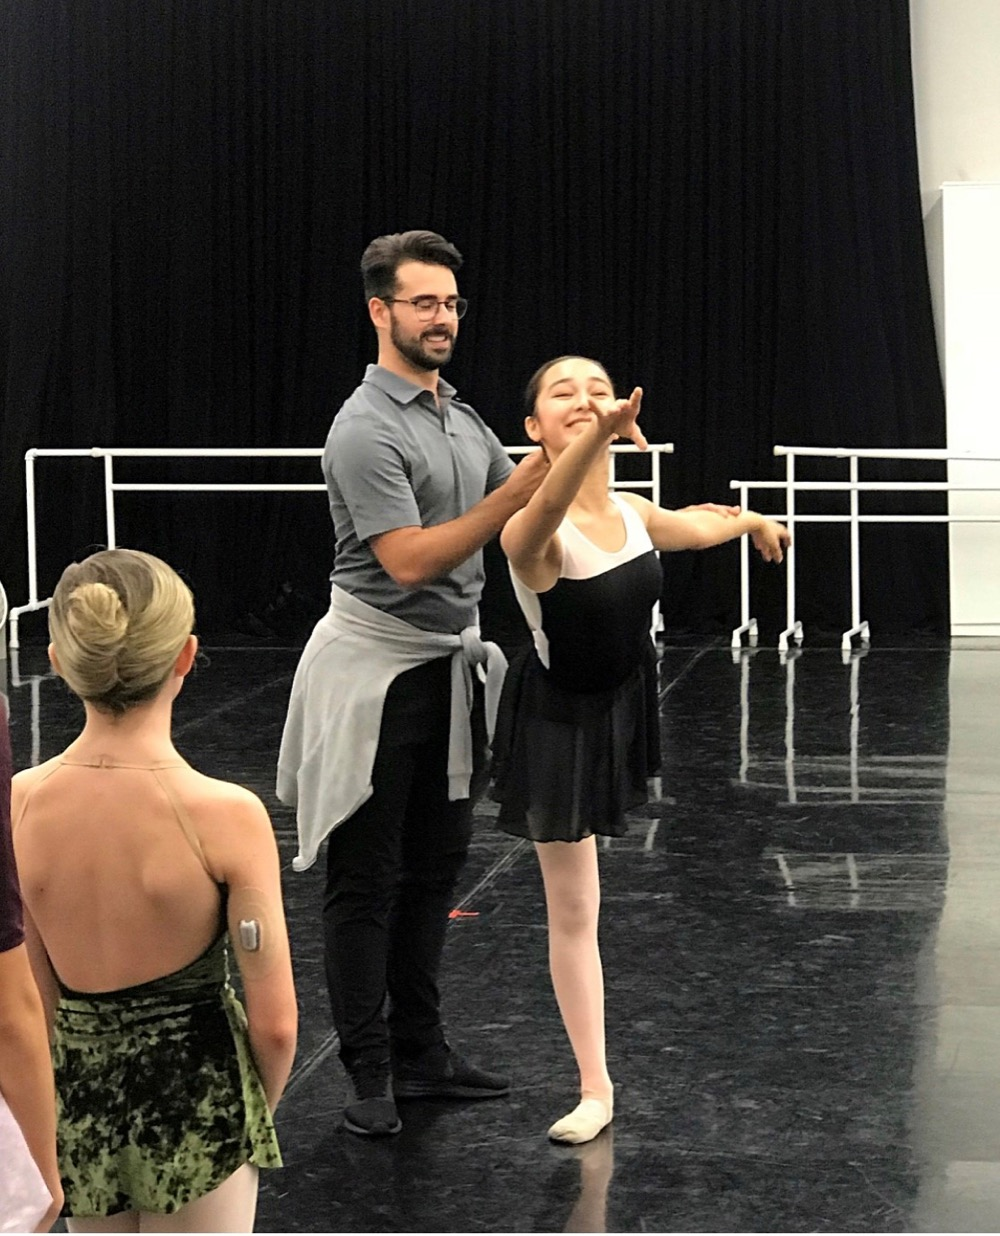 Jose Carayol Preparing for Performance (Courtesy of The Joffrey Ballet in Chicago)